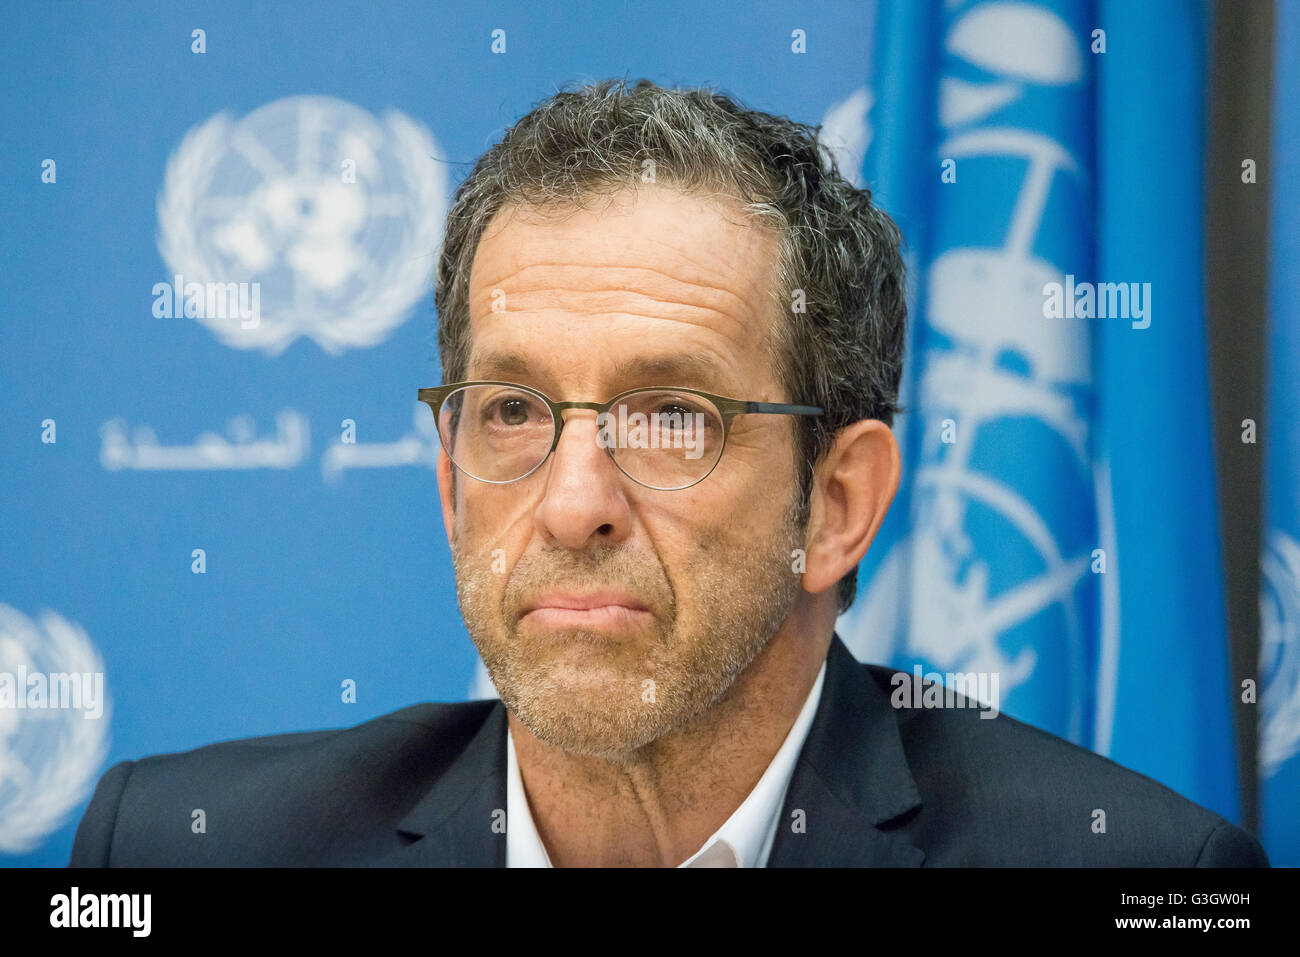 New York, United States. 07th June, 2016. Kenneth Cole speaks at the press conference. On the eve of the start of Stock Photo